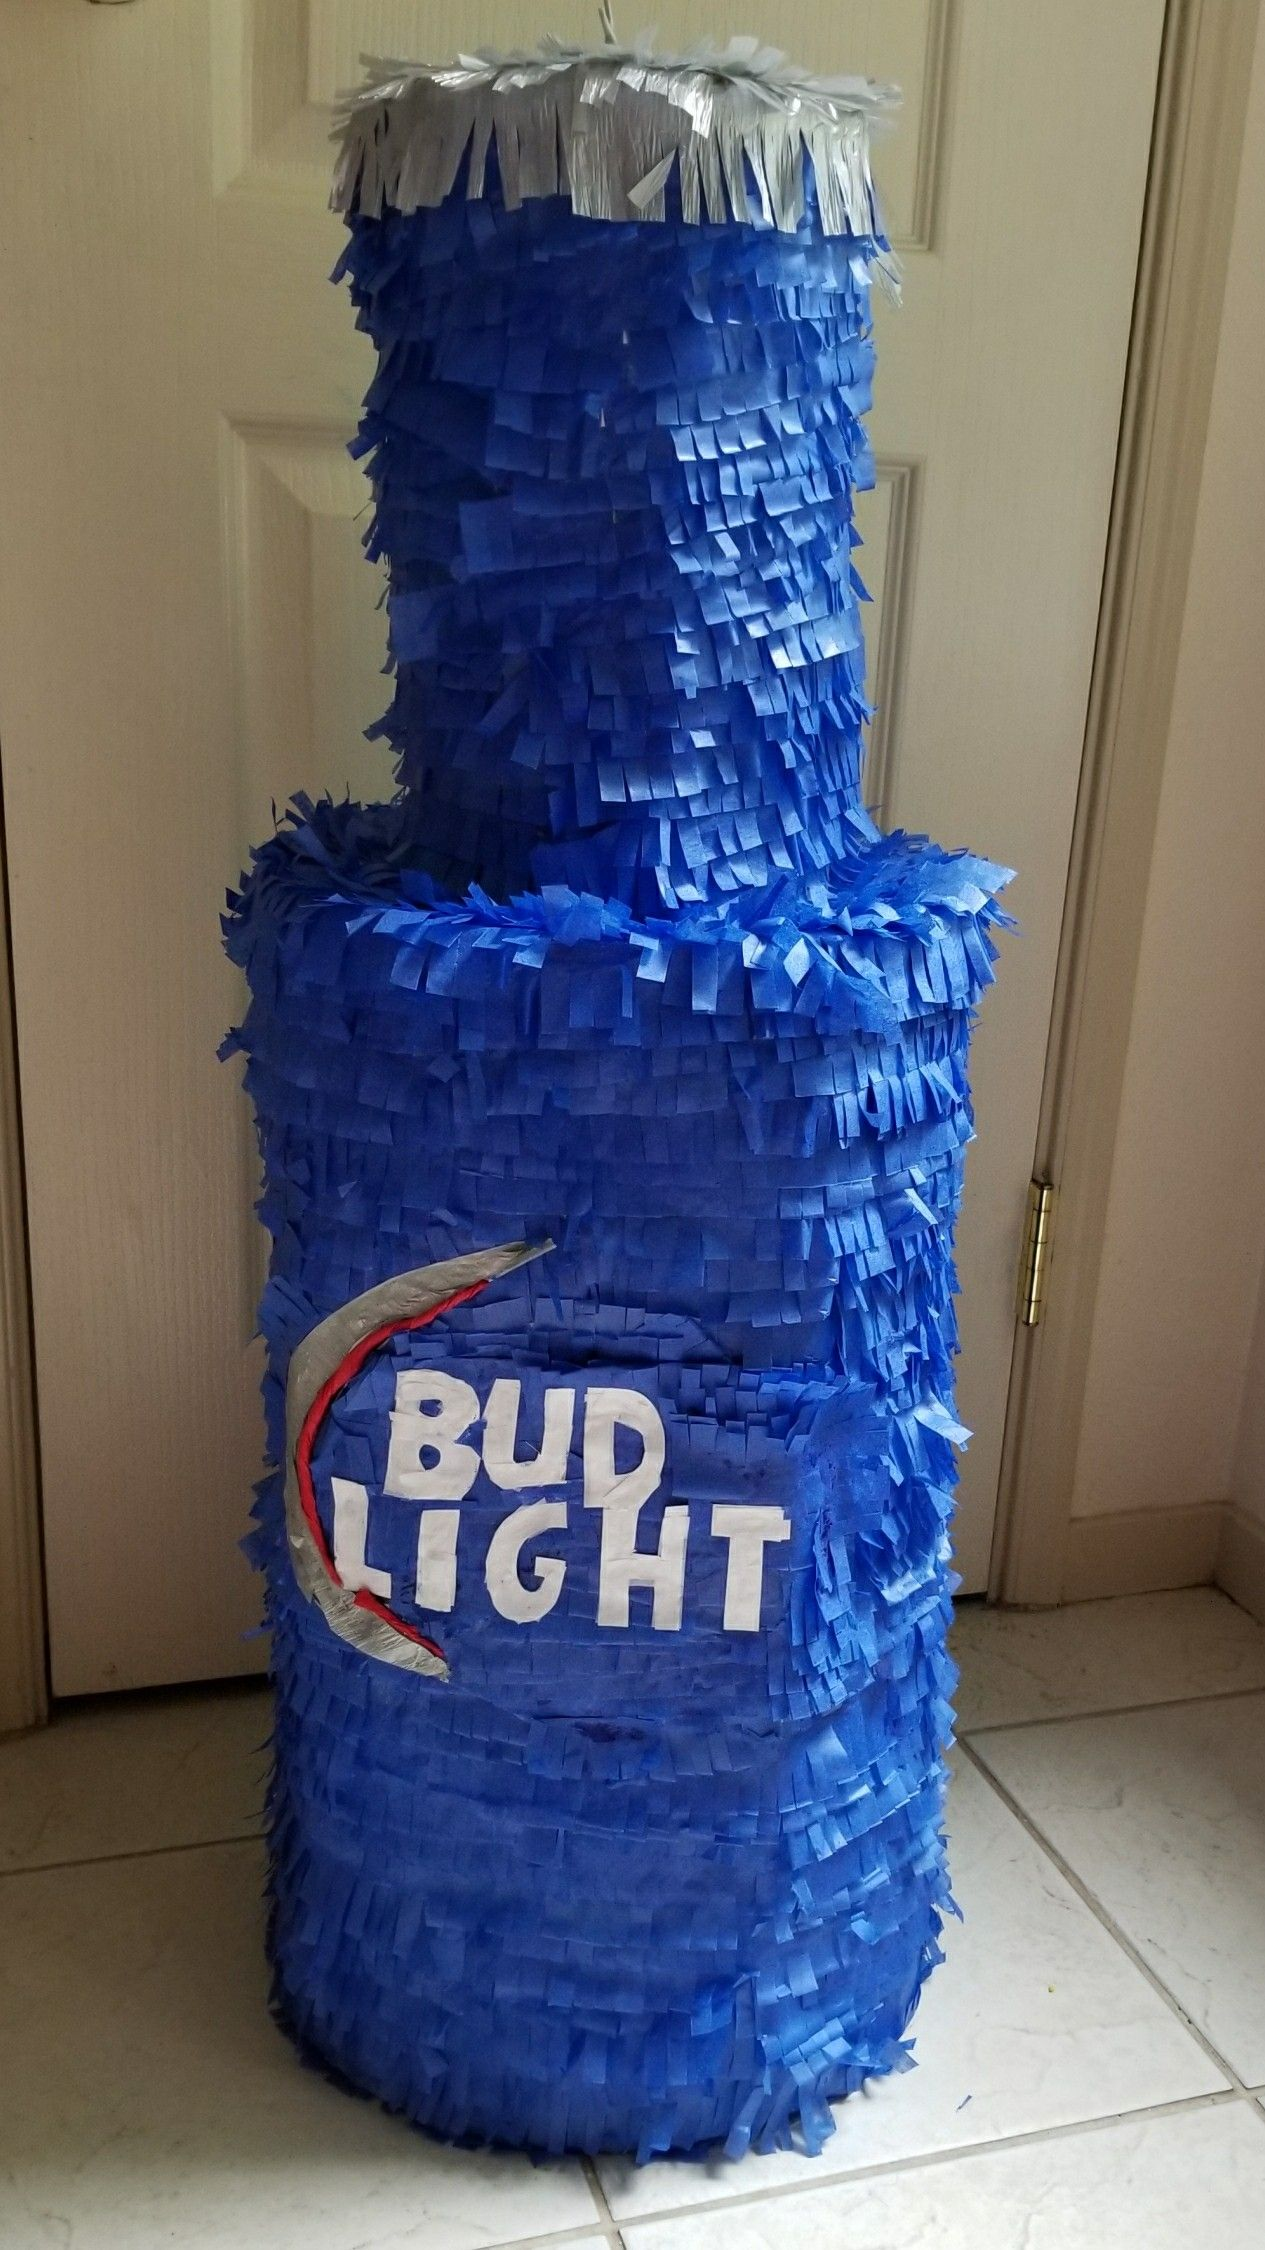 40 40oz Budlight Light Bottle Pinata My Pinatas In 2019 40th